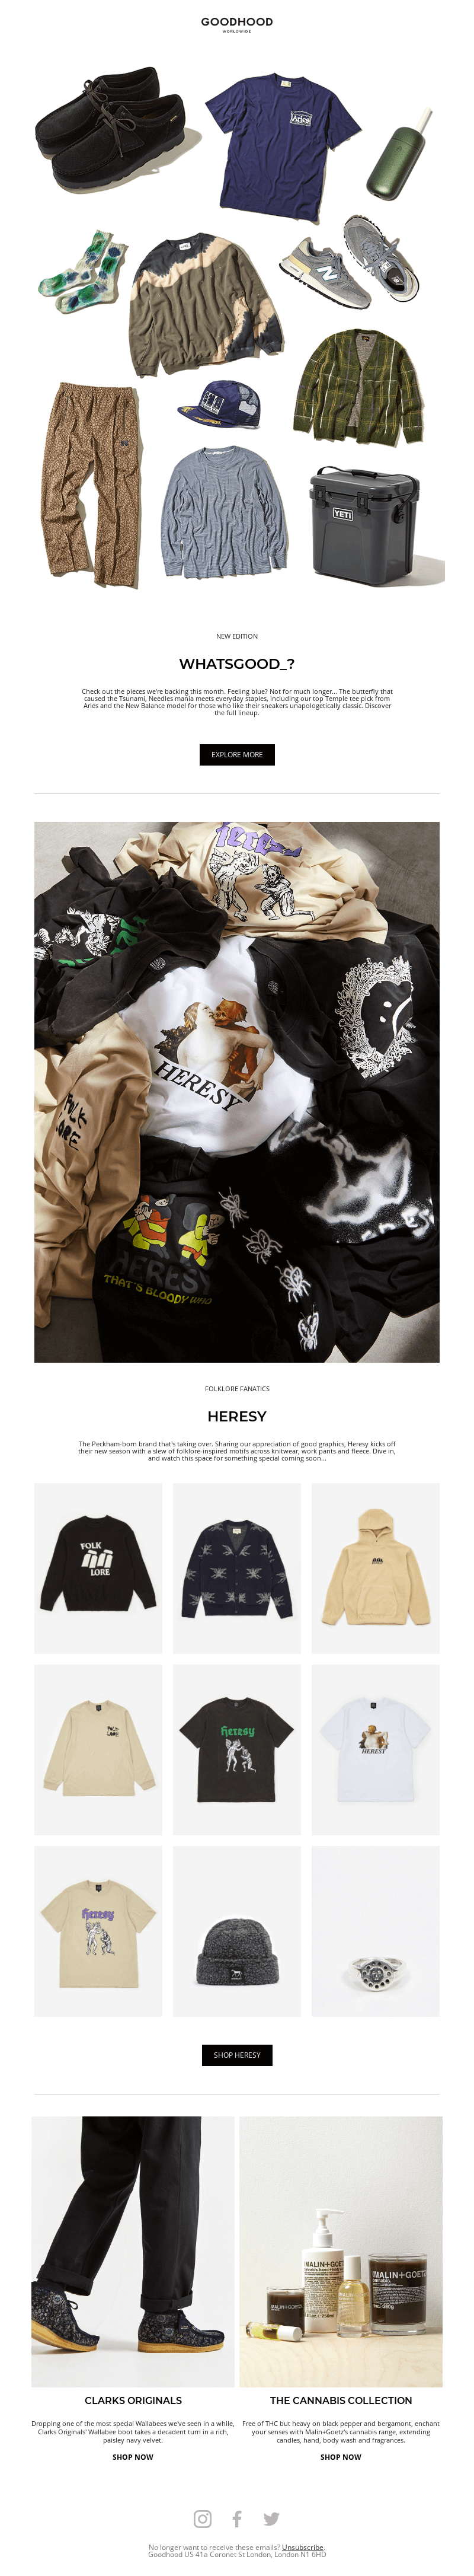 goodhood email